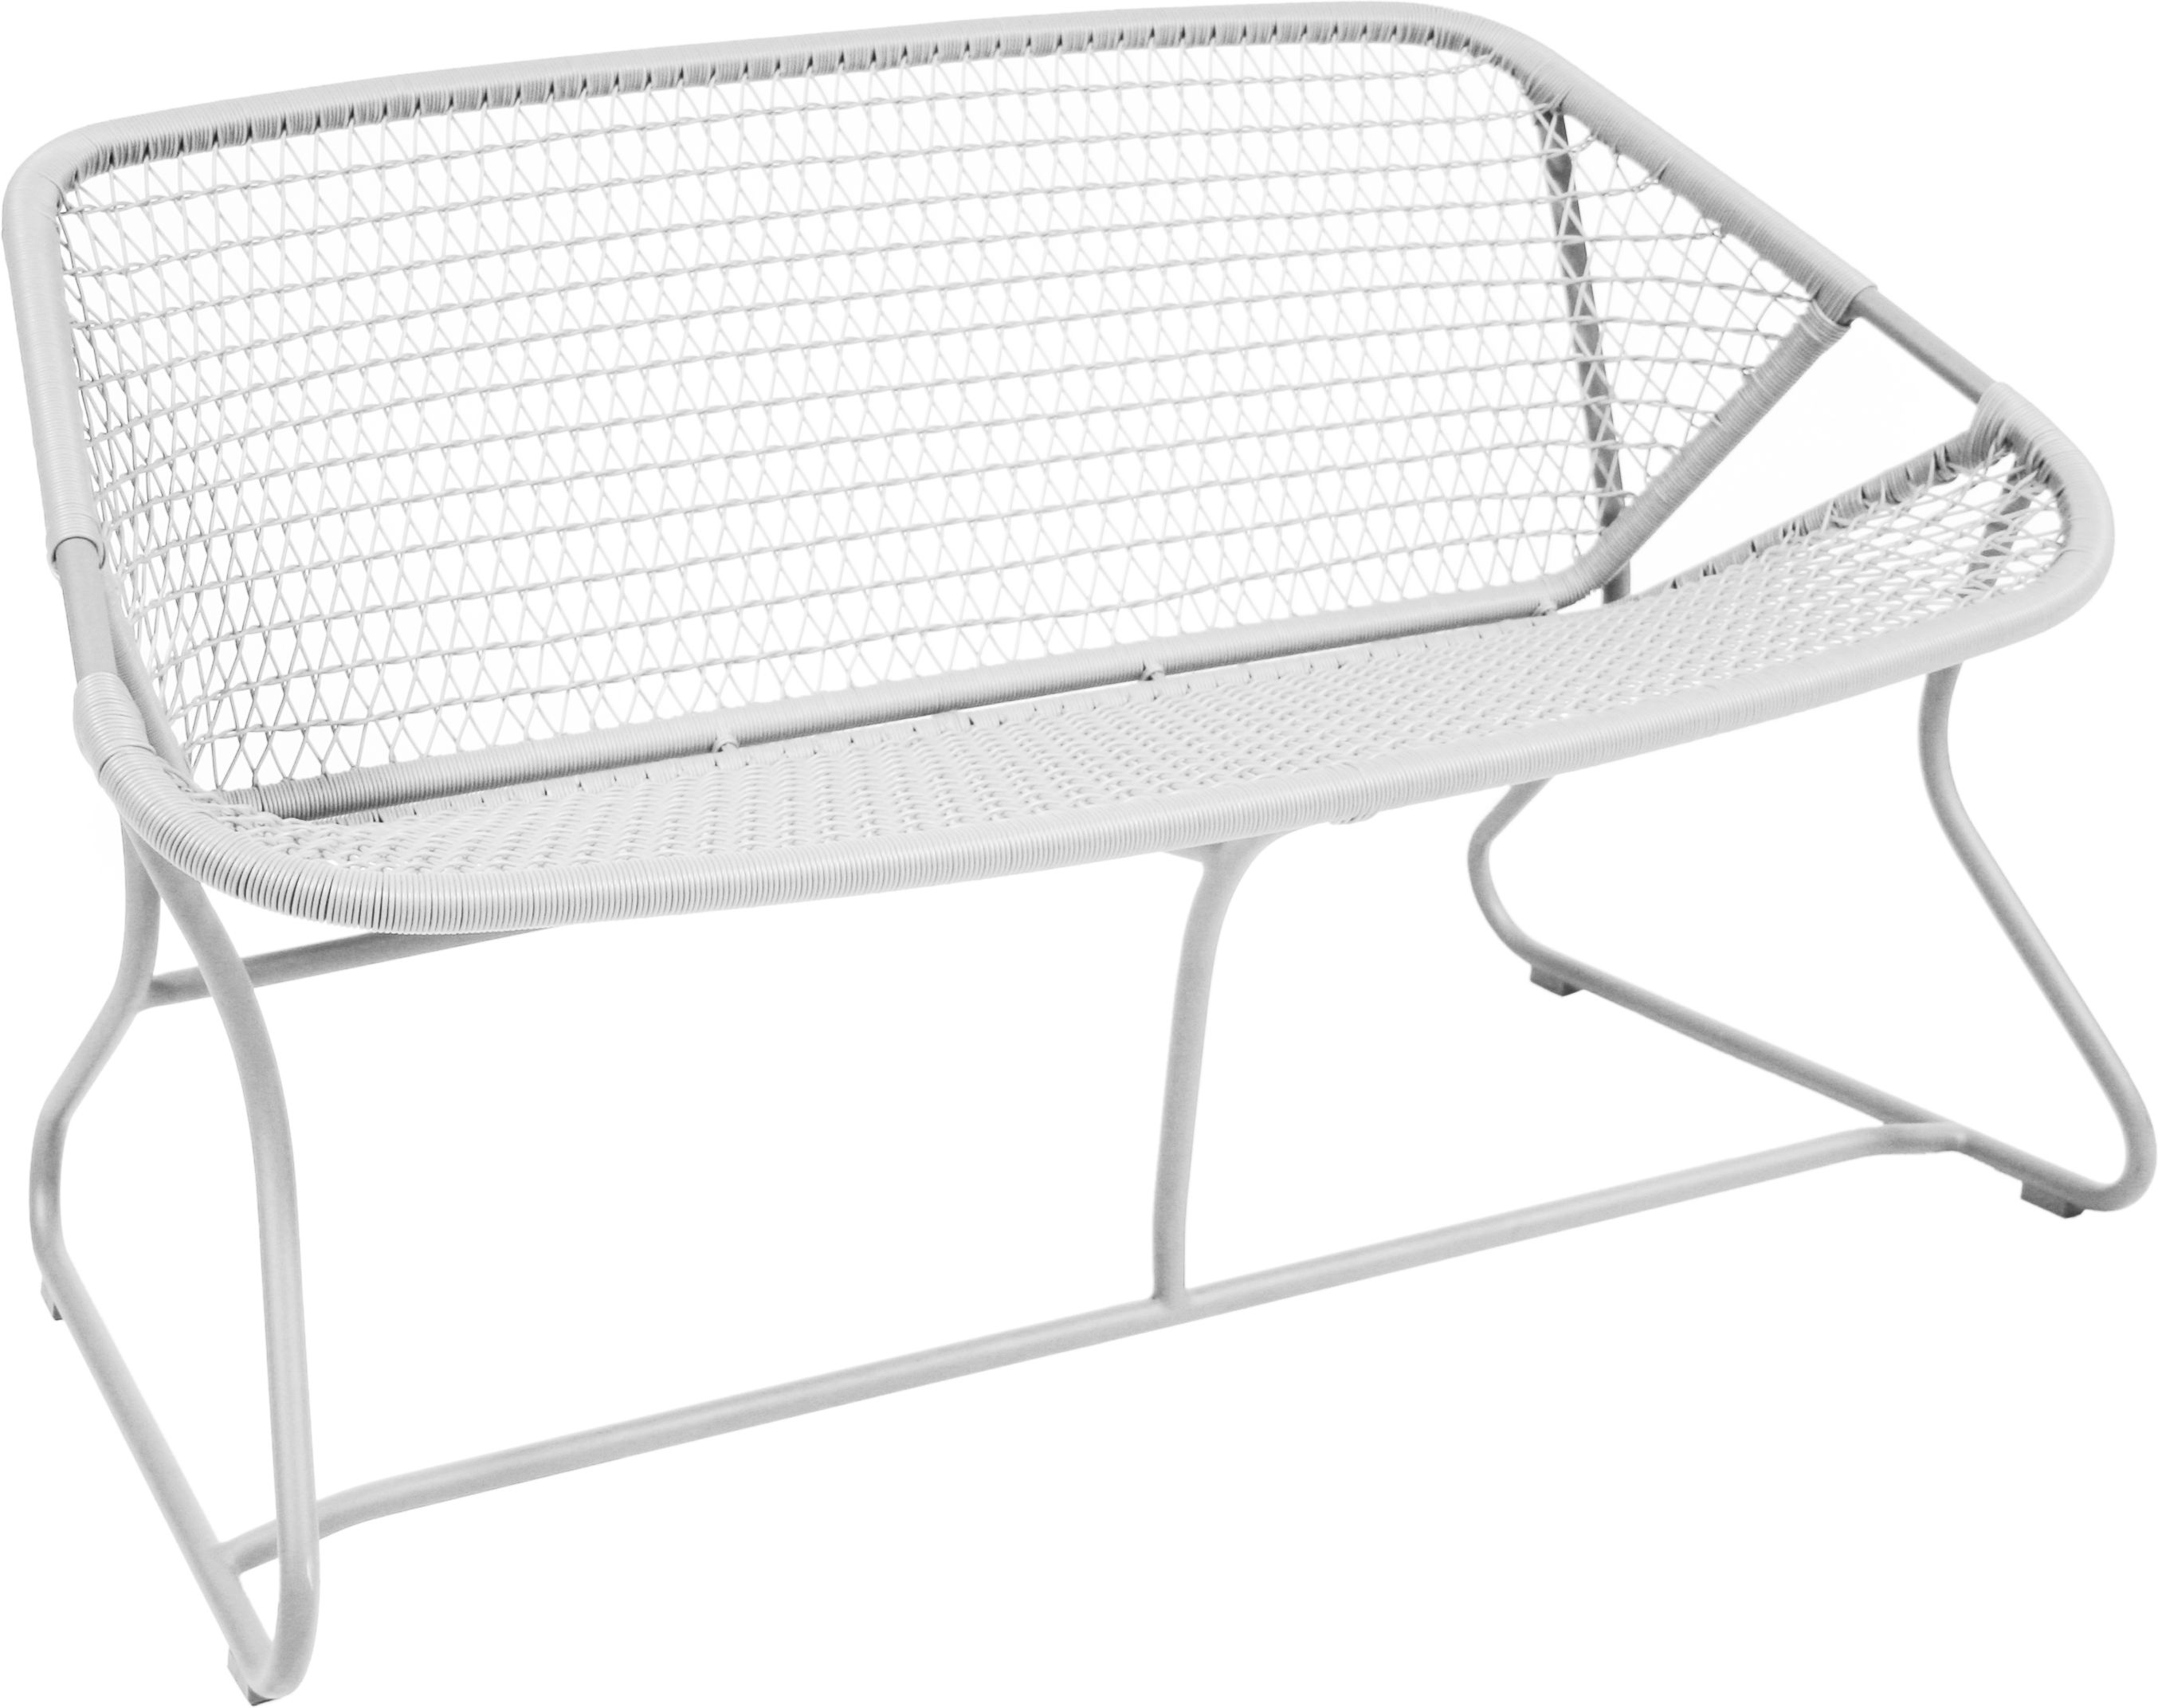 Furniture - Benches - Sixties 2 seater sofa by Fermob - White - Aluminium, Plastic material